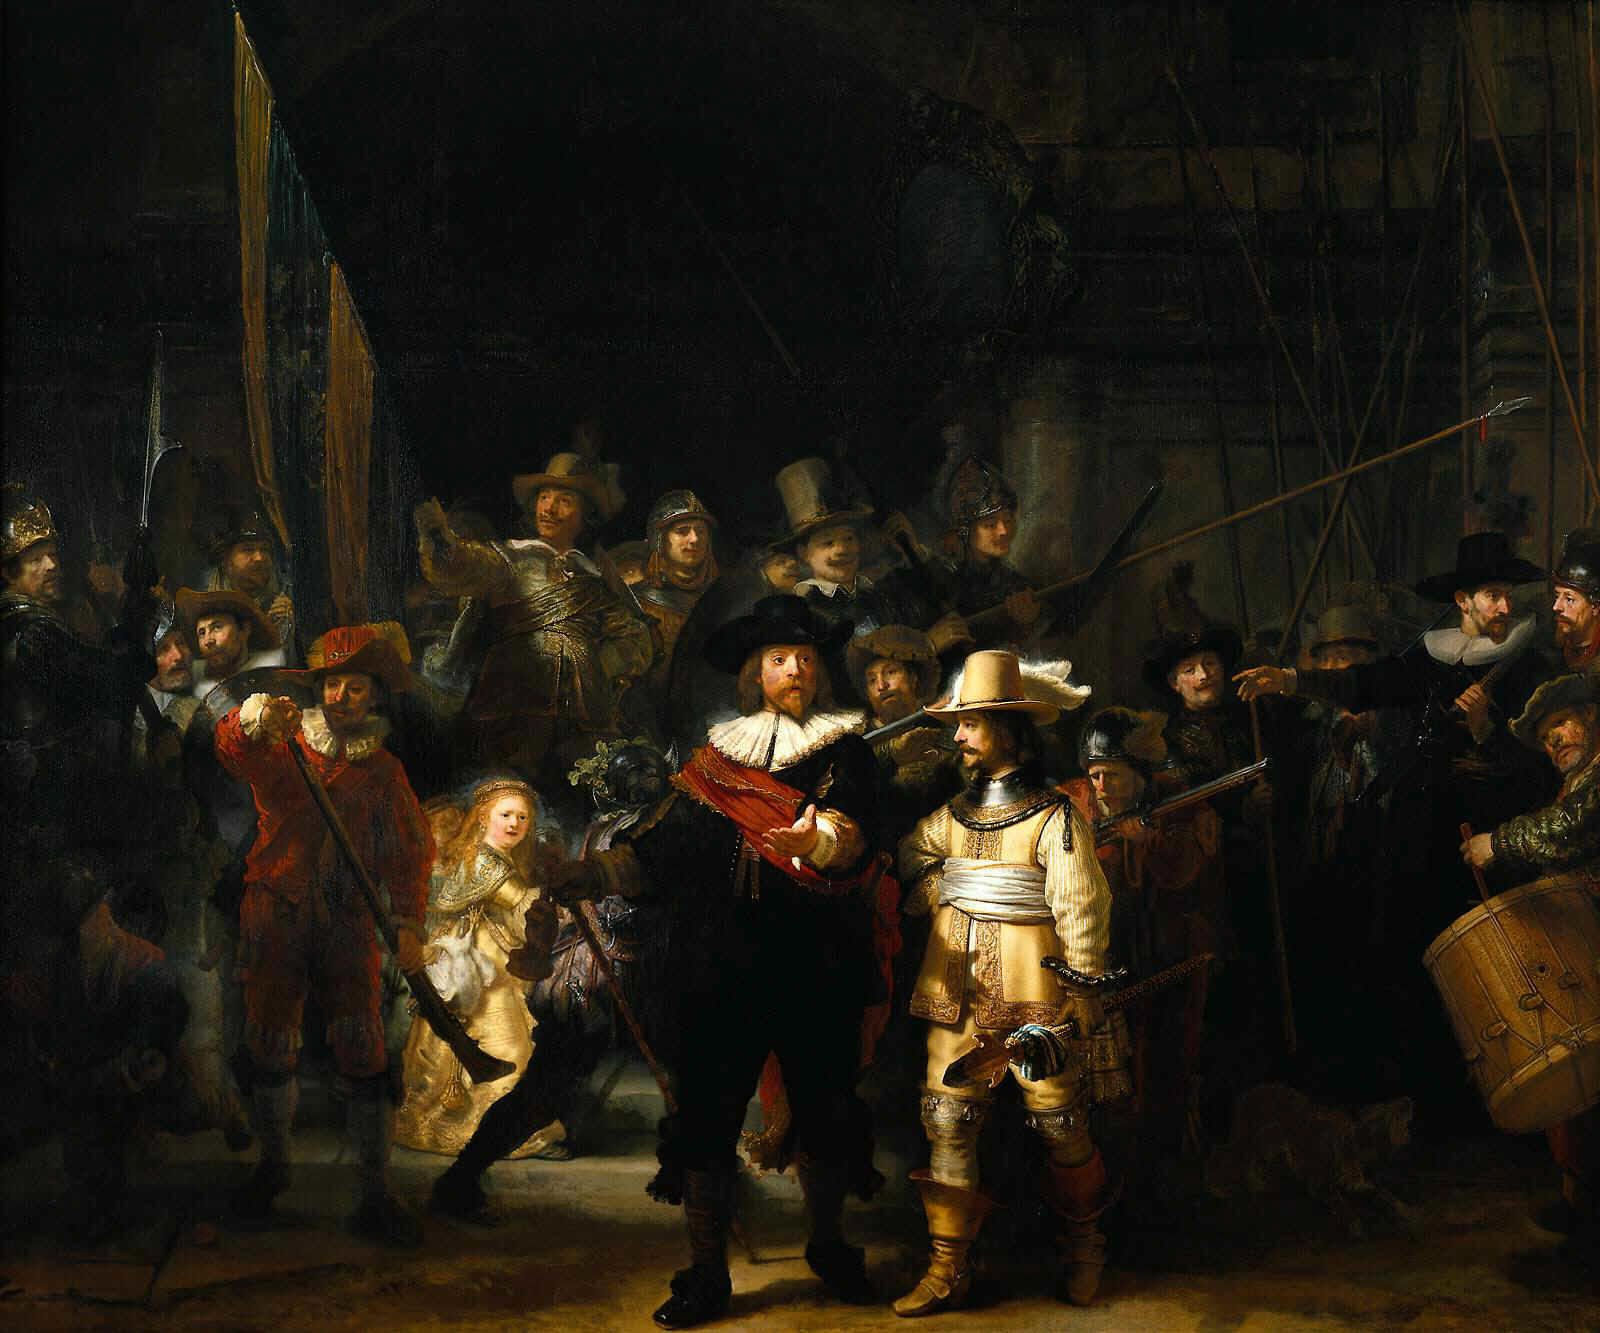 term paper a study of grander times renaissance art and baroque term paper a study of grander times renaissance art and baroque art introduction to the renaissance